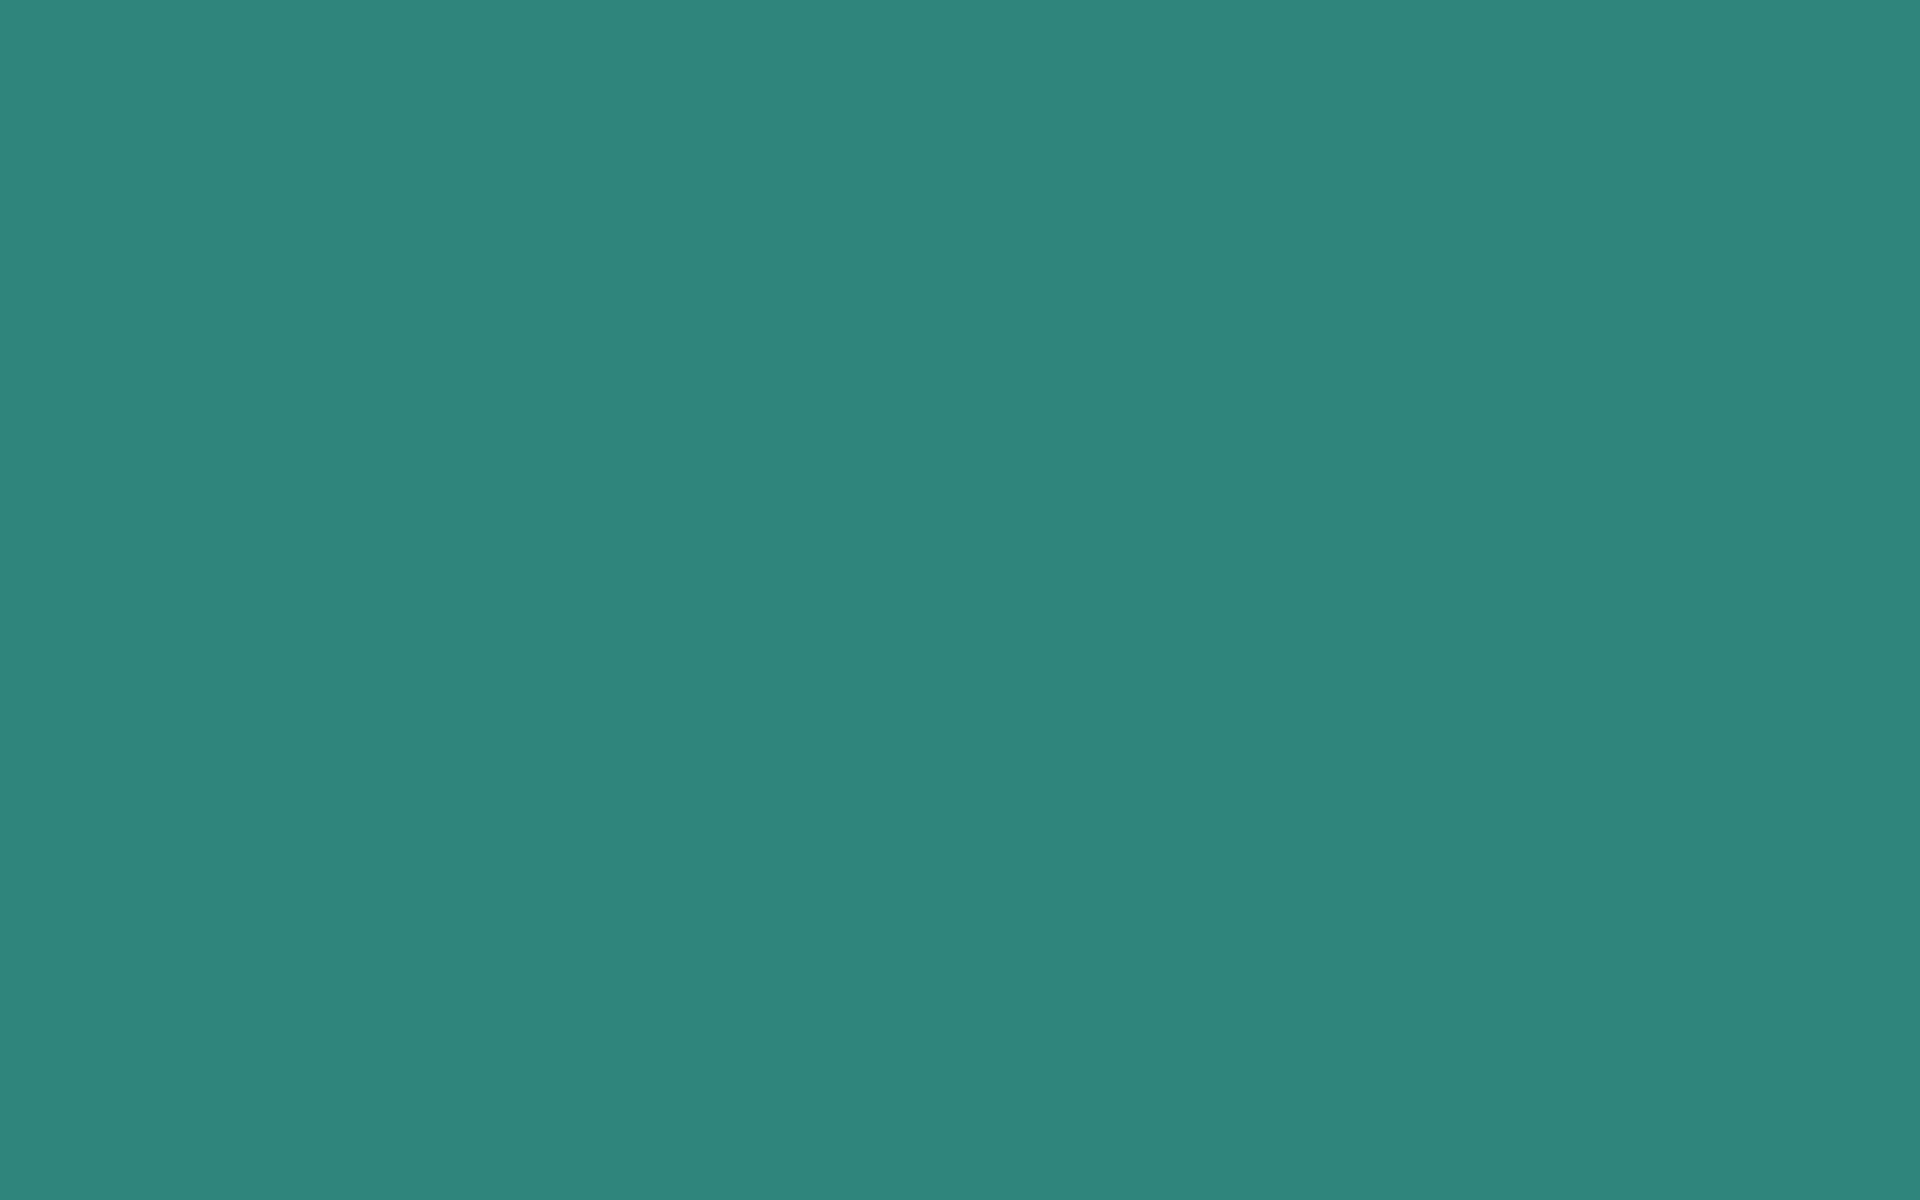 1920x1200 Celadon Green Solid Color Background